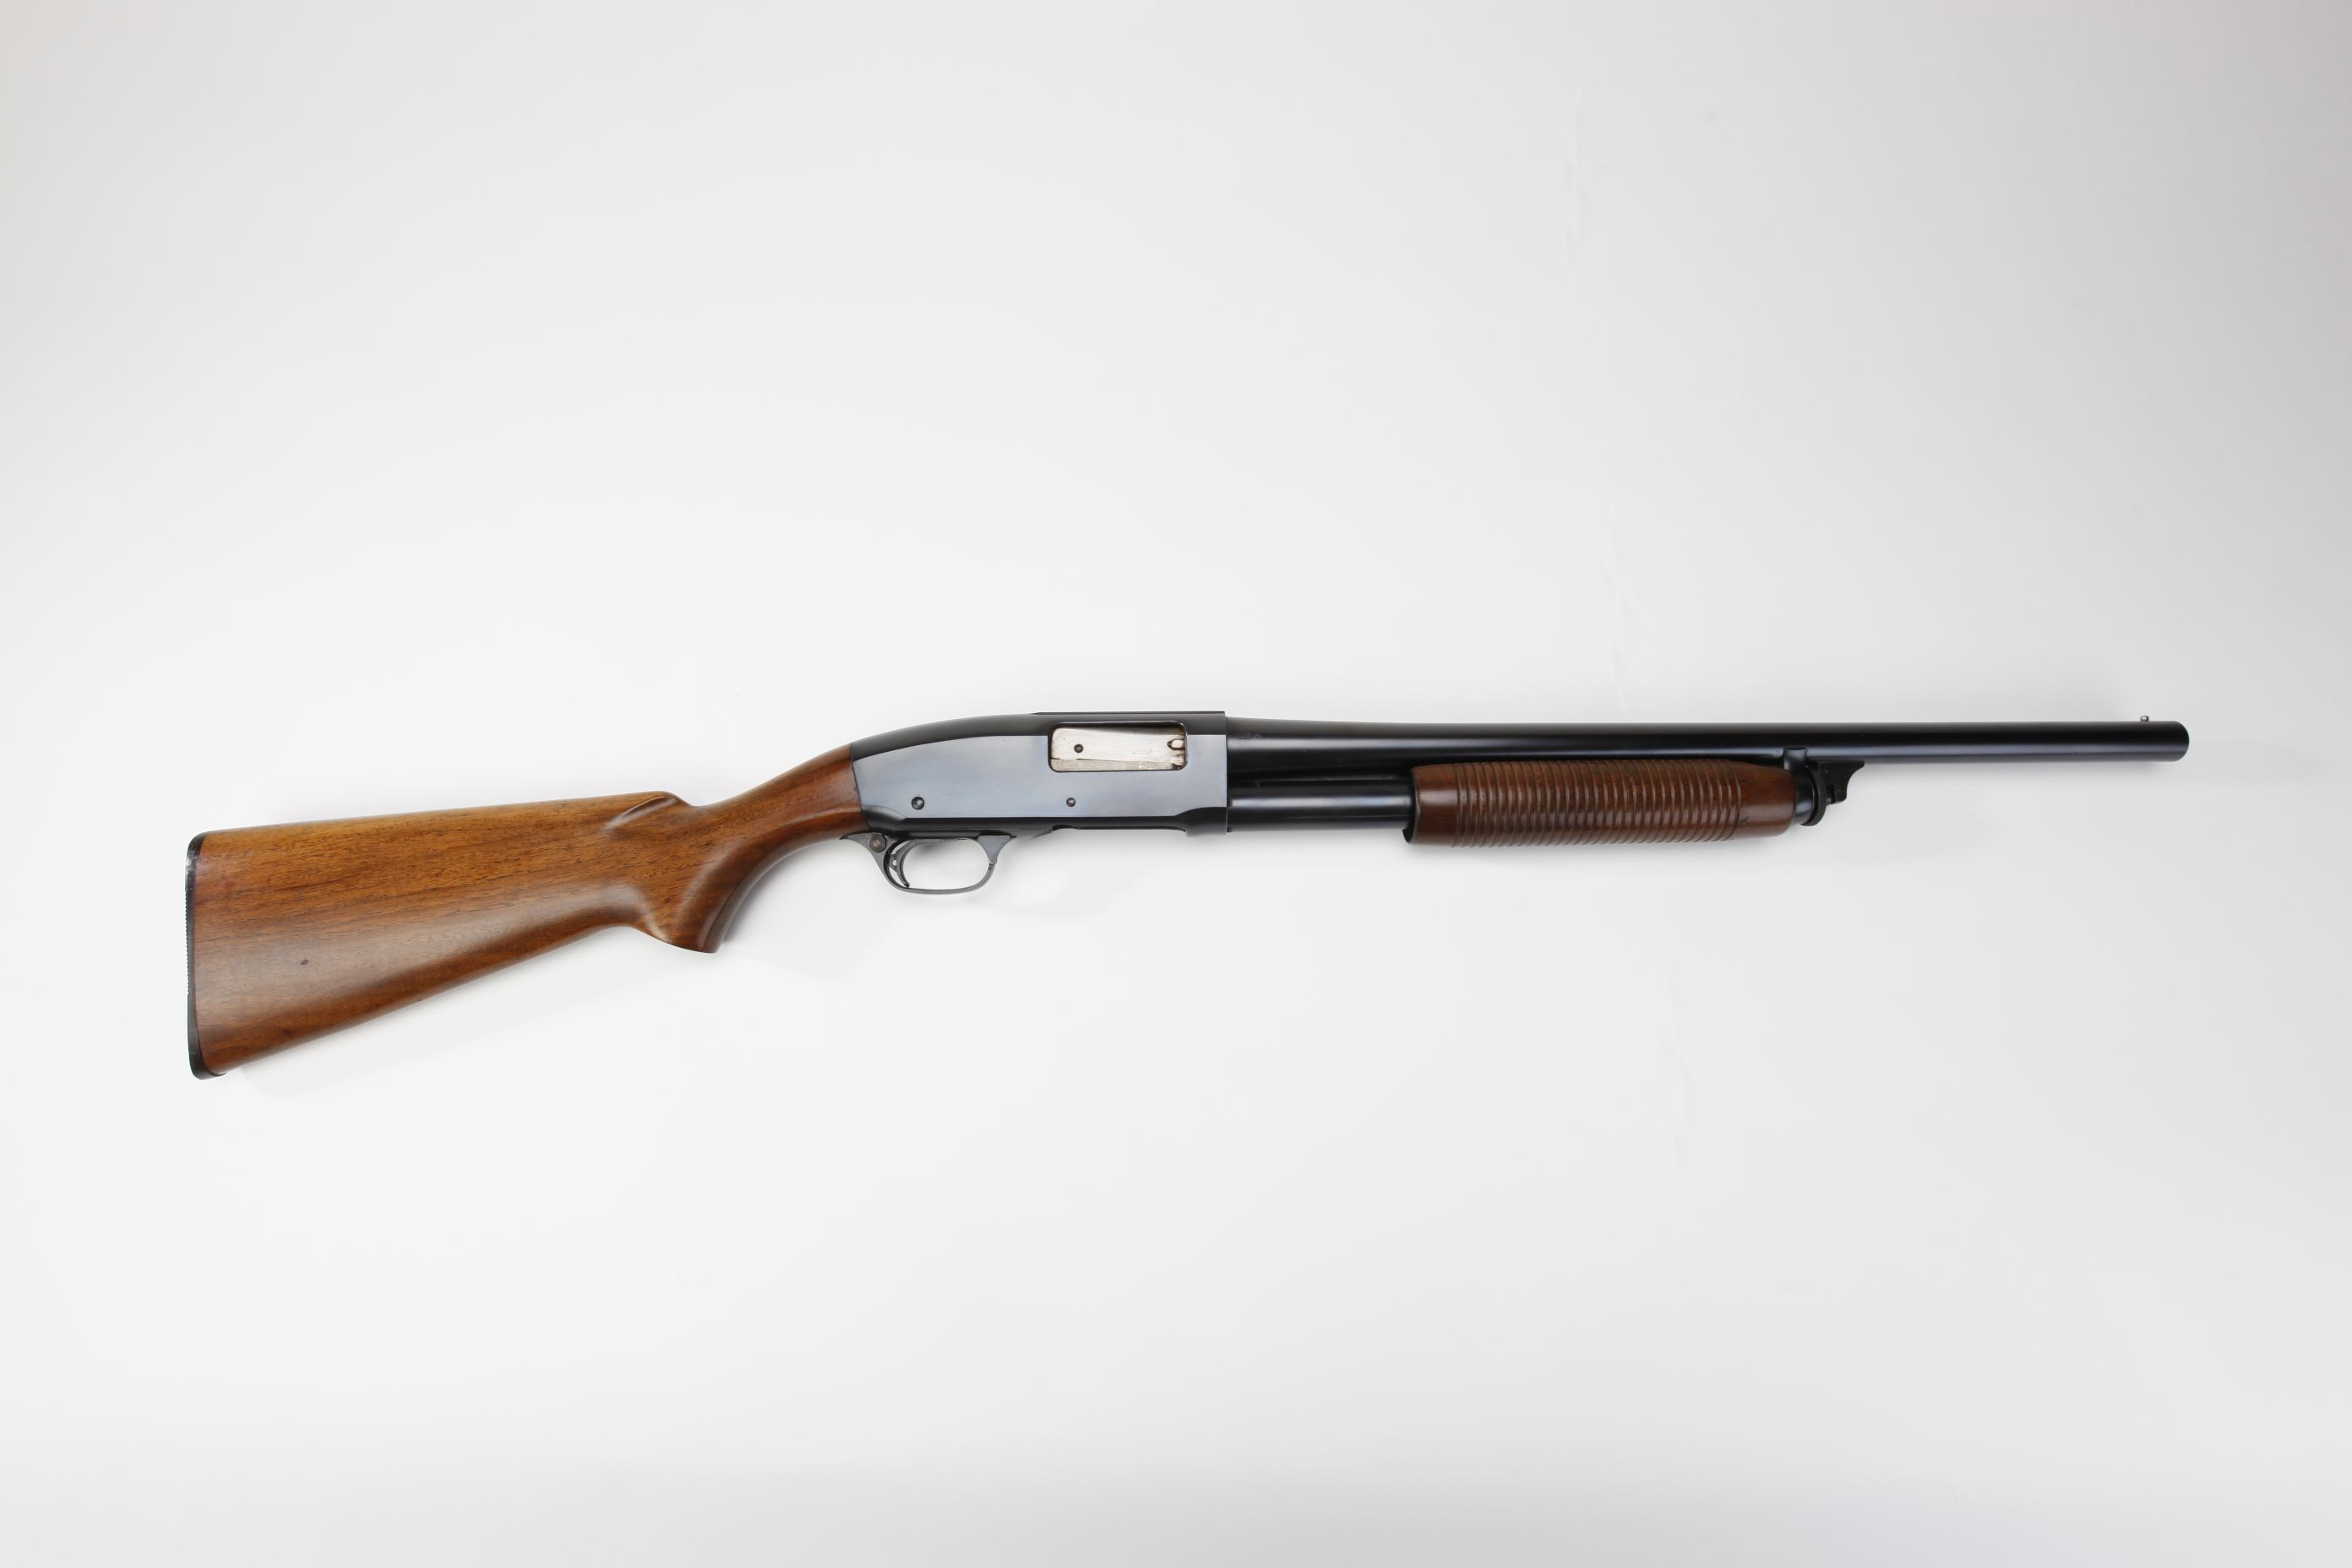 Remington 31R Slide Action Riot Shotgun